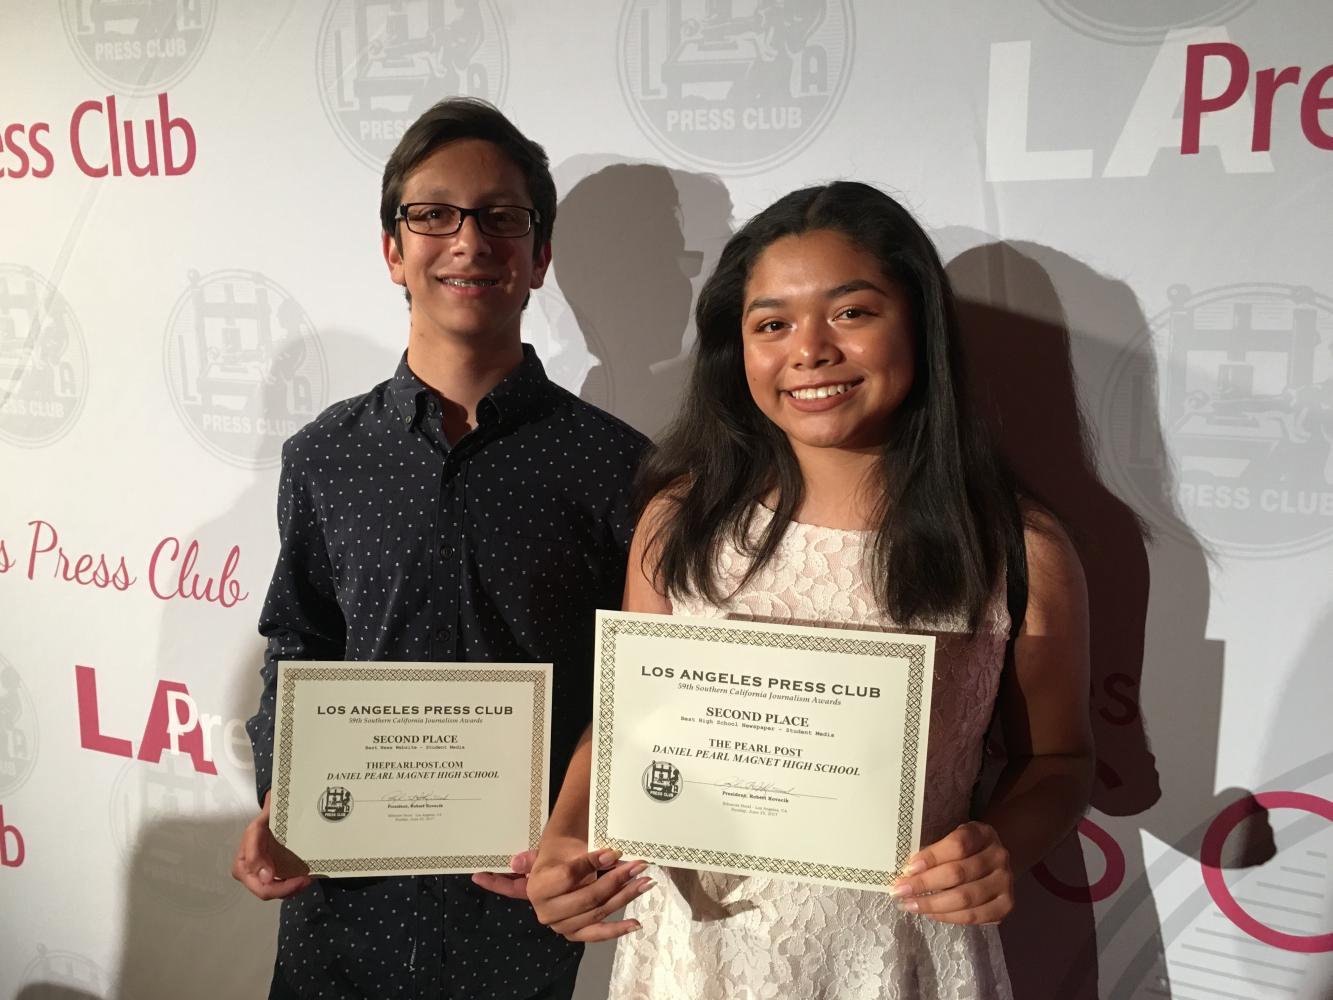 Editors Michael Chidbachian and Kirsten Cintigo after receiving second place for both the online and print publications at the 2017 SoCal L.A. Press Club Awards in June 2017.